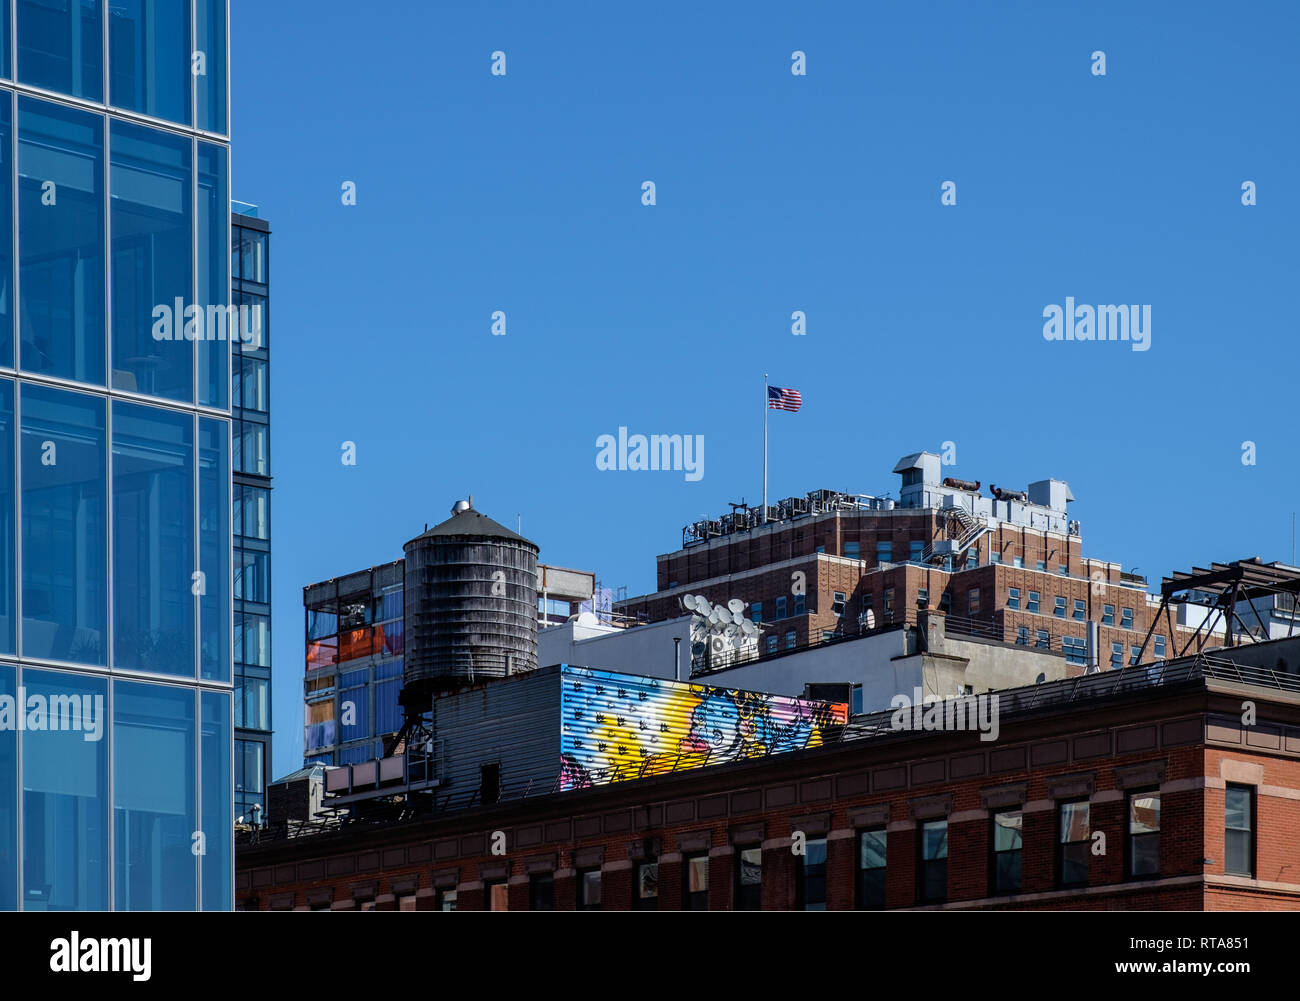 Rooftops with American flag, old round water tank, & painted graffiti in West Side, Manhattan, New York City, Mar 18, 2018. - Stock Image